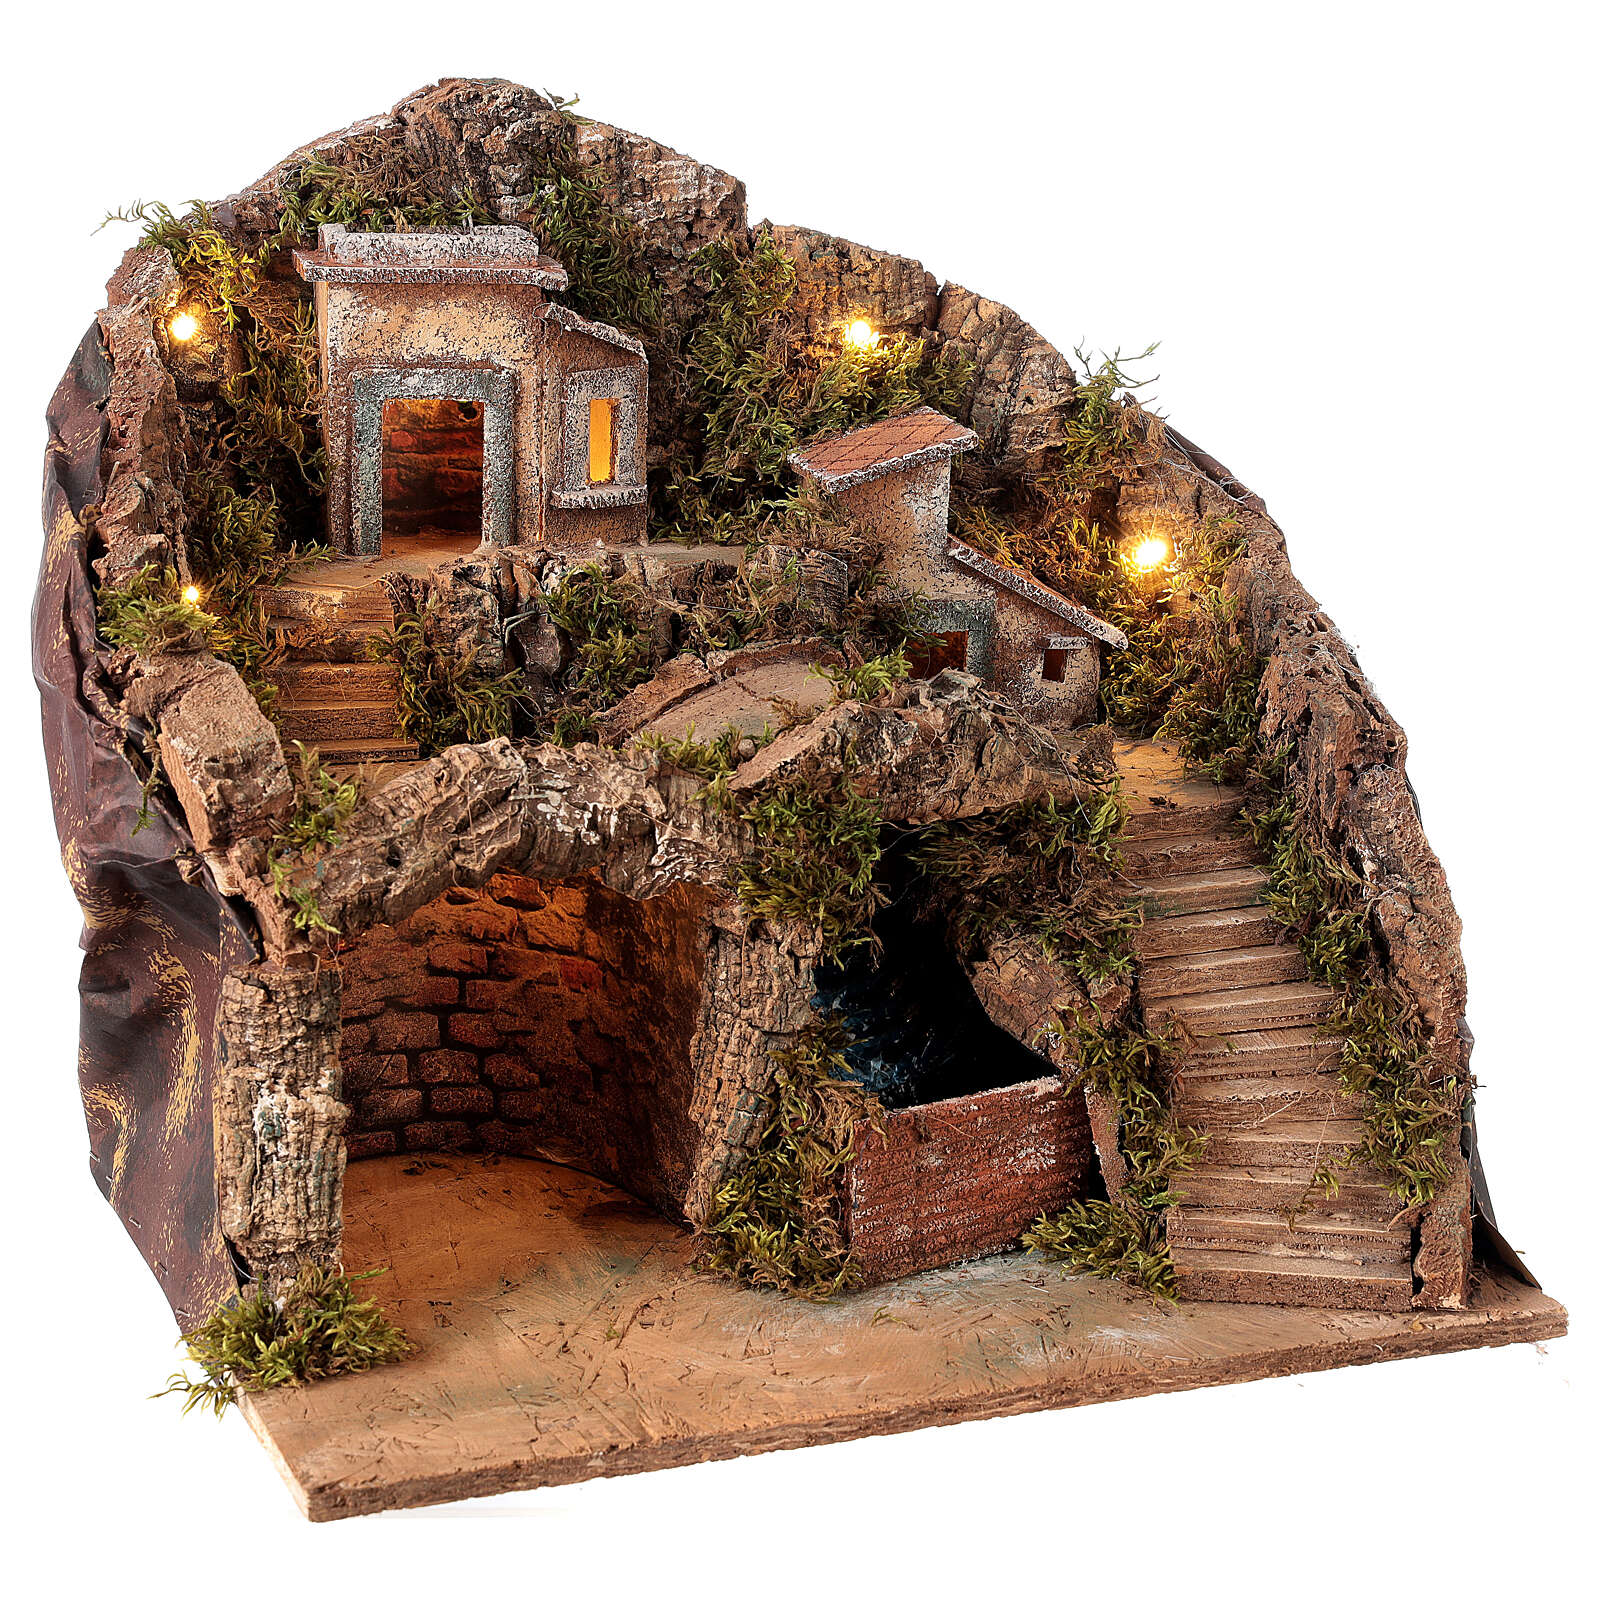 Nativity scene setting Neapolitan village with water stream 40x30x40 cm for 8-10 cm characters 4